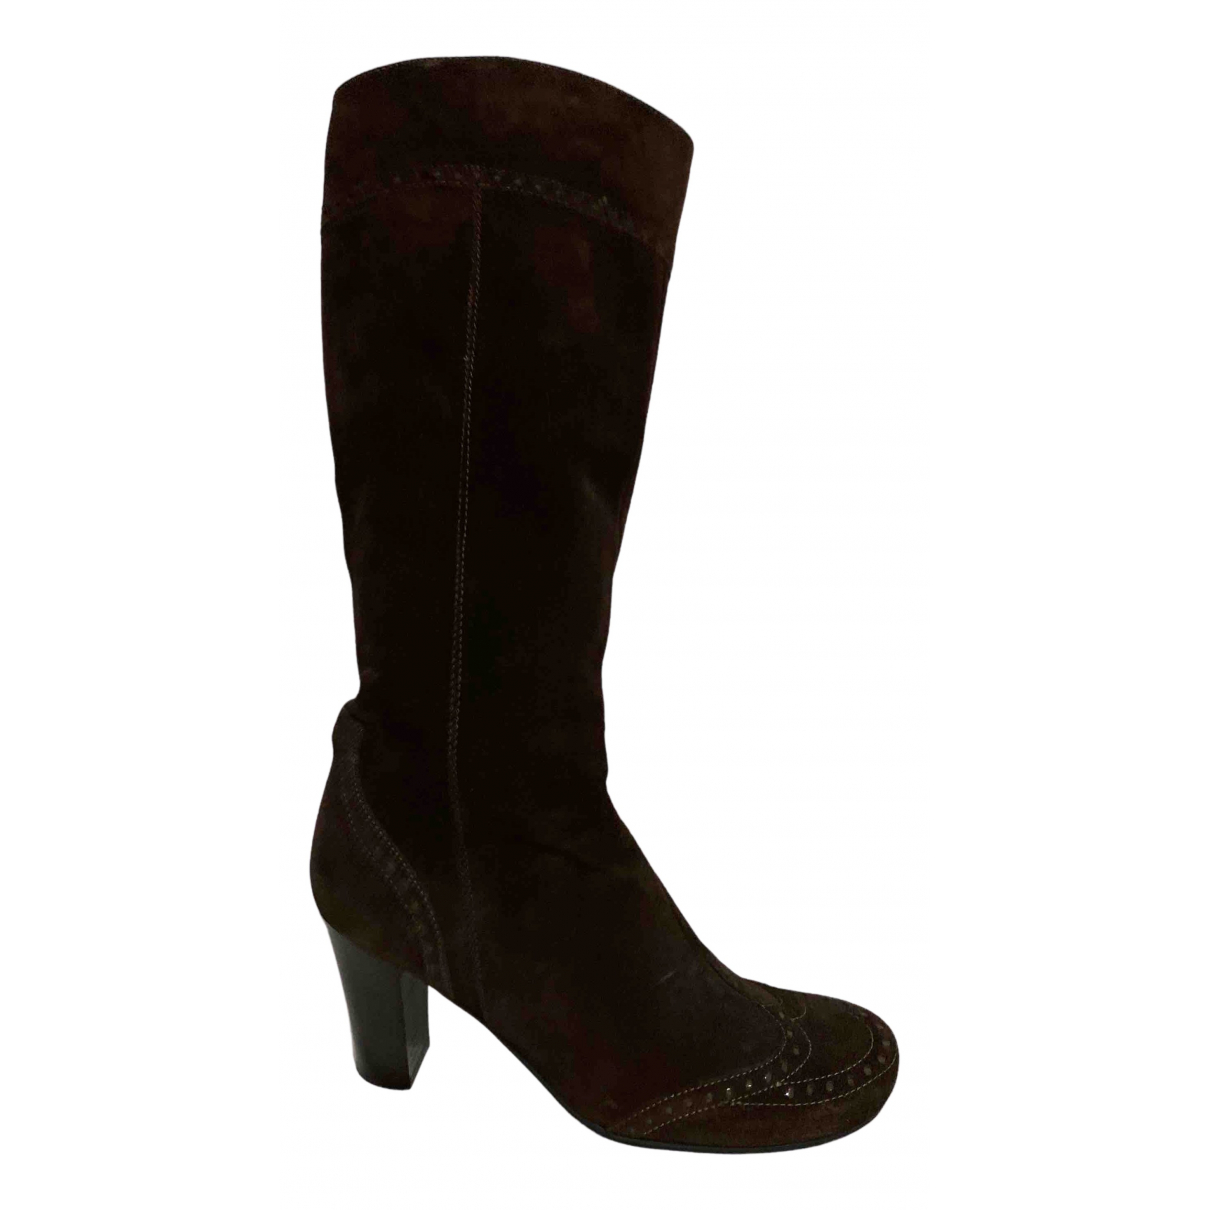 Janet & Janet N Brown Suede Boots for Women 36 EU